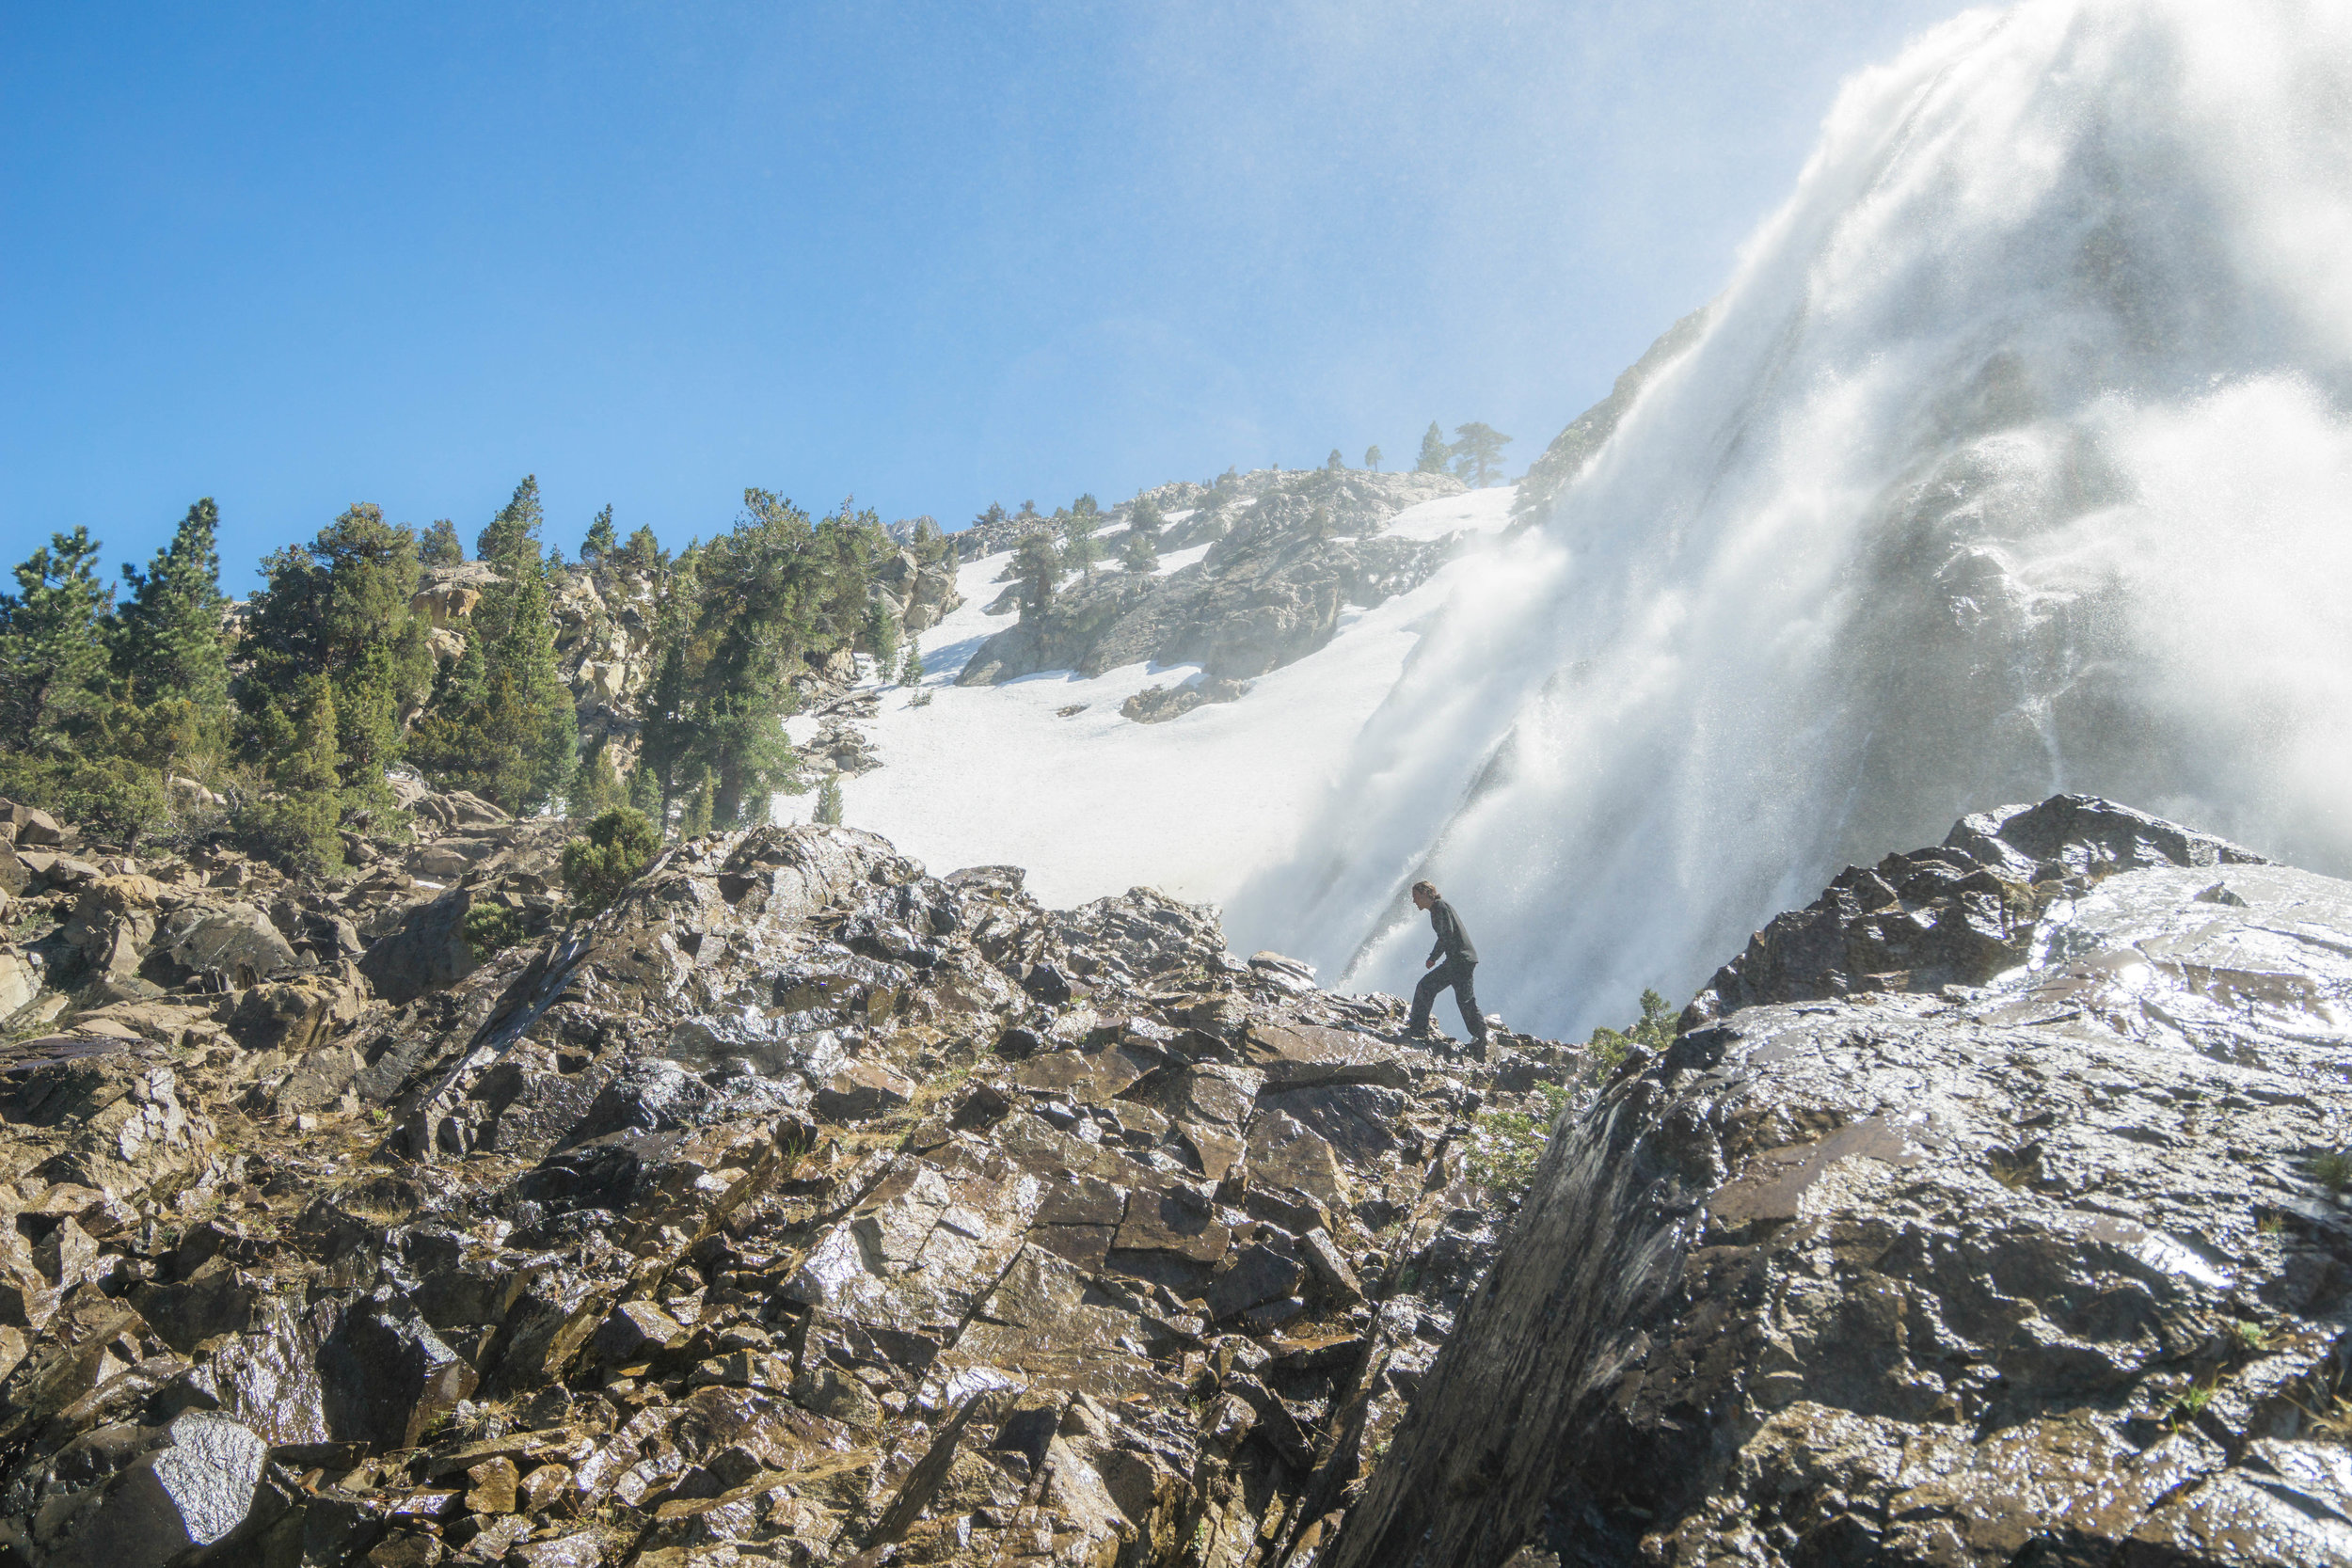 Getting blasted by the sun, the melting winter snowpack fed the fall's torrent rush with an abnormally large amount of water.